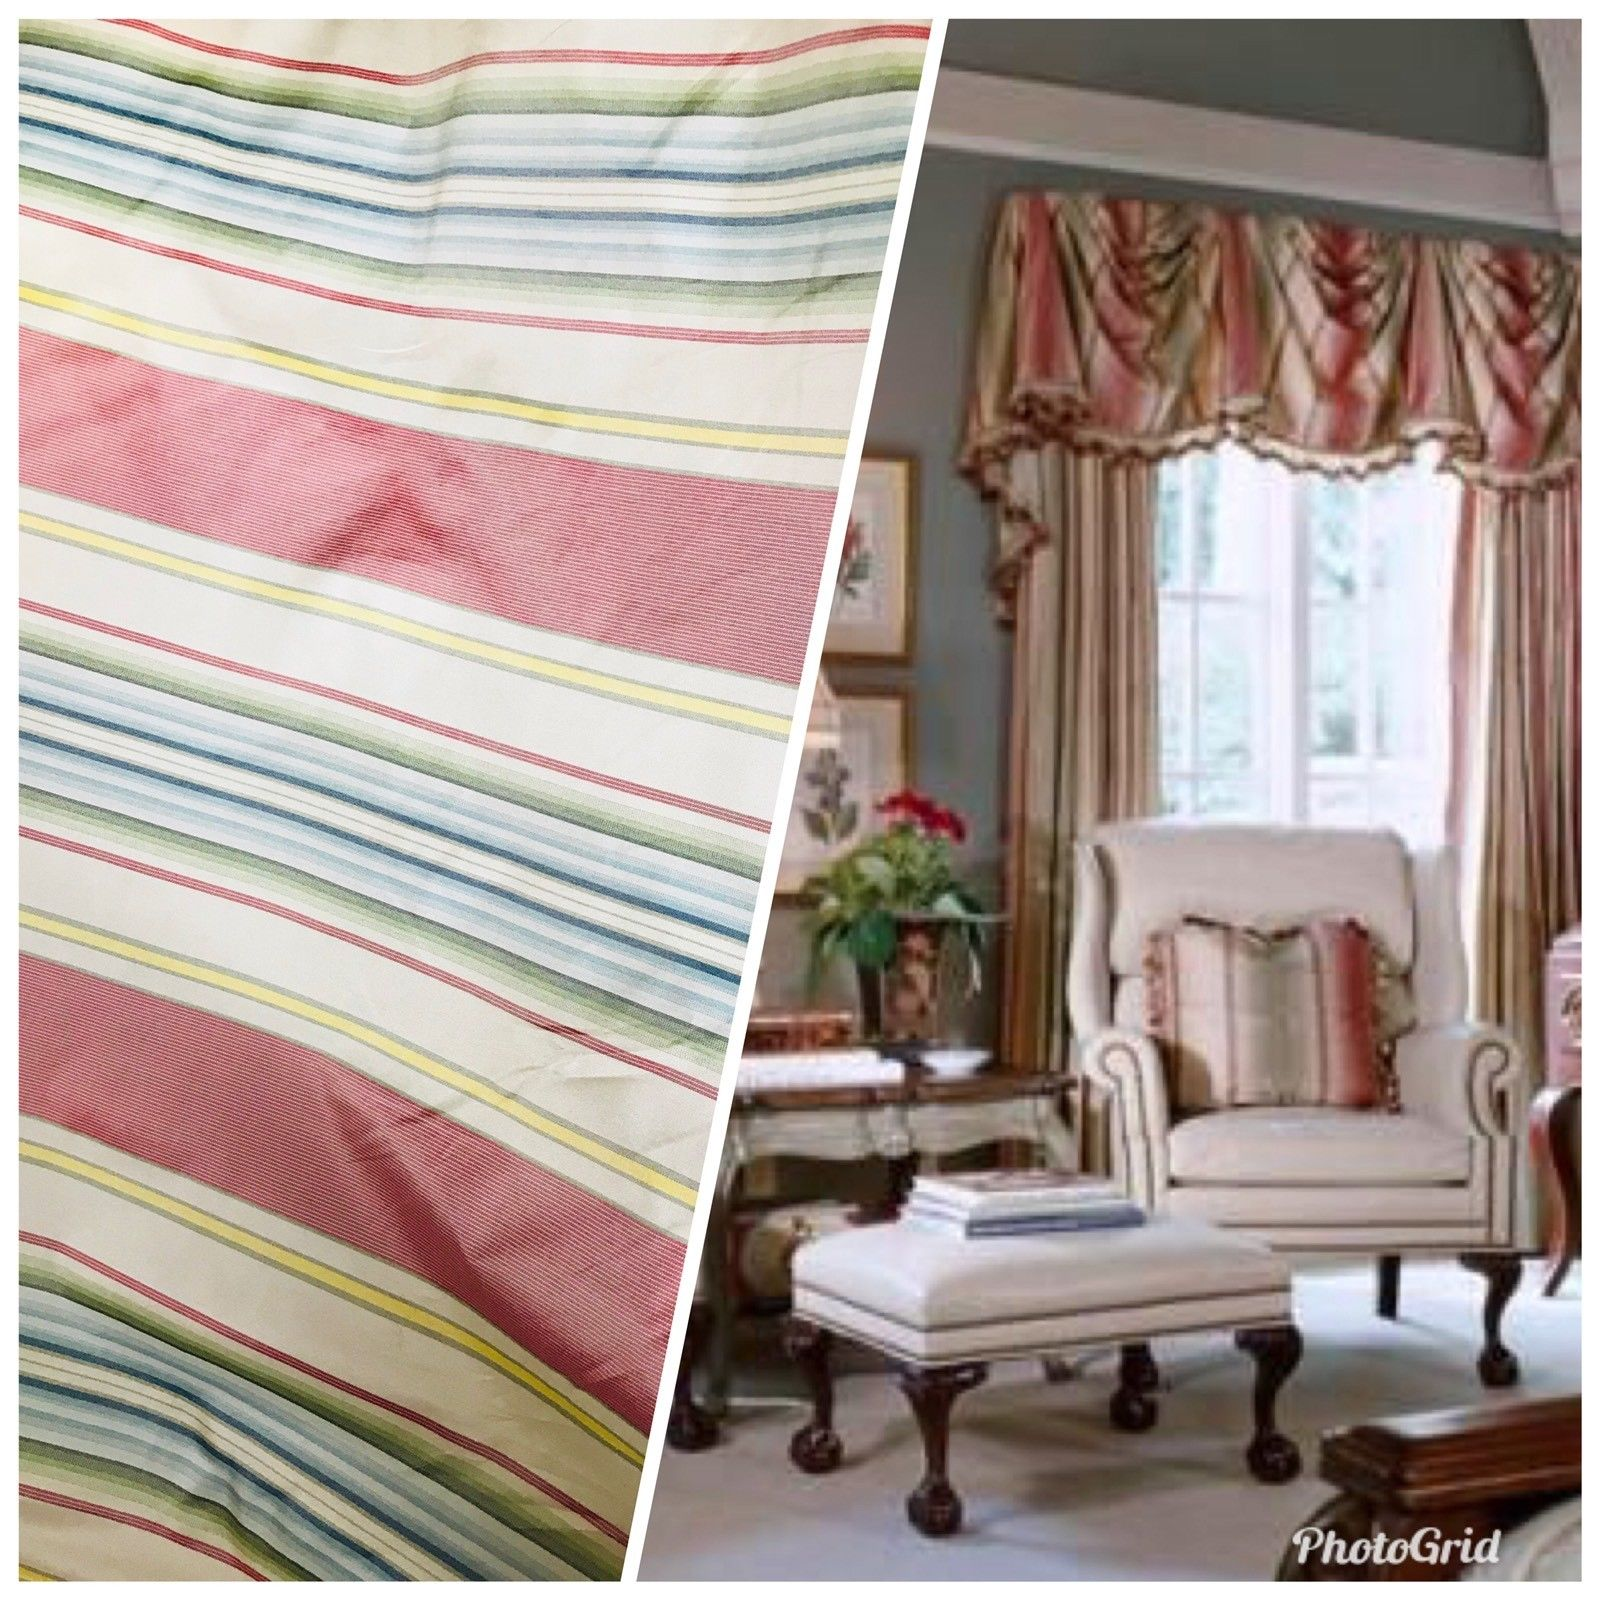 SALE! Striped 100% Silk Taffeta Fabric With Faded Colorful Stripes - Fancy Styles Fabric Boutique